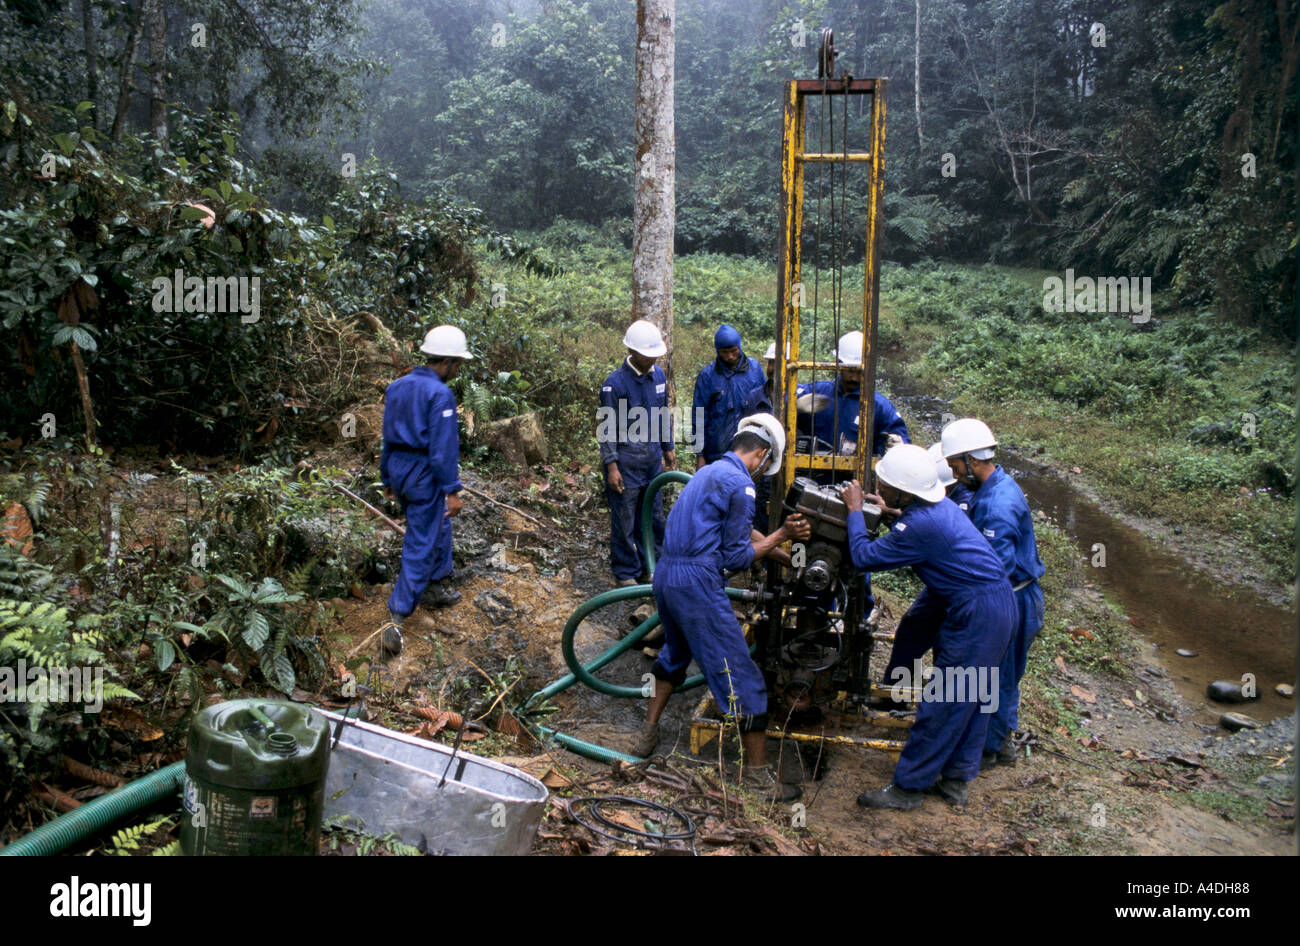 Geologists drilling as part of a seismic survey for oil and